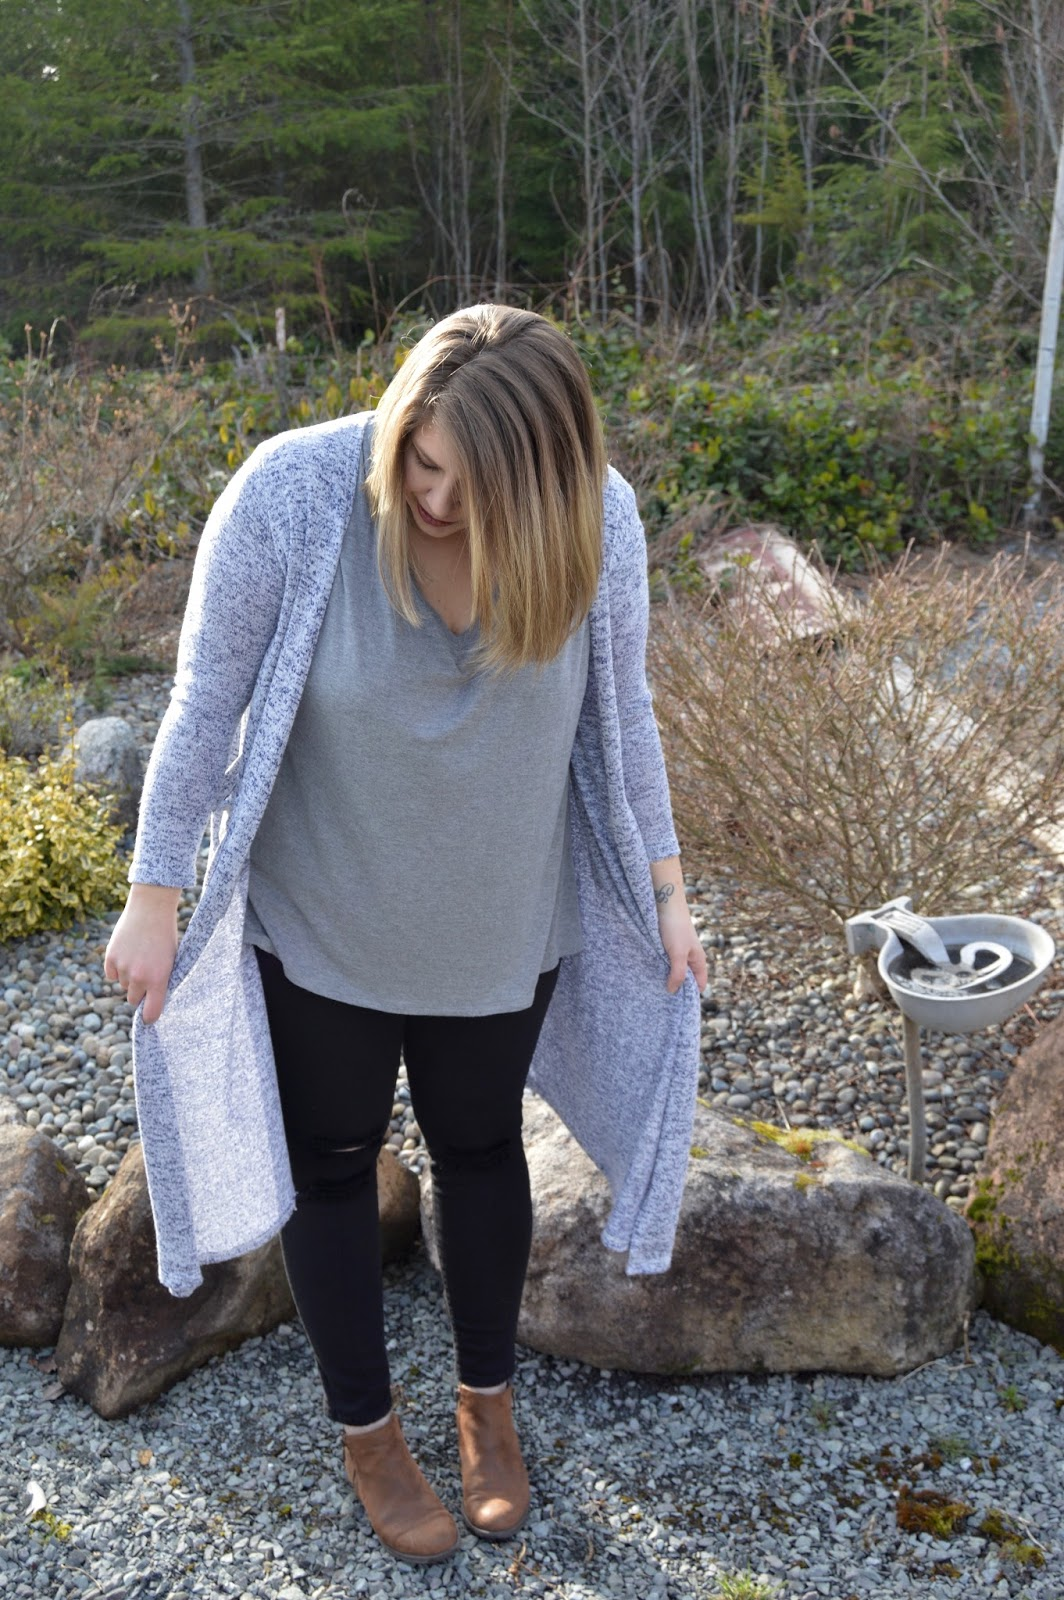 Dressing For The First Trimester